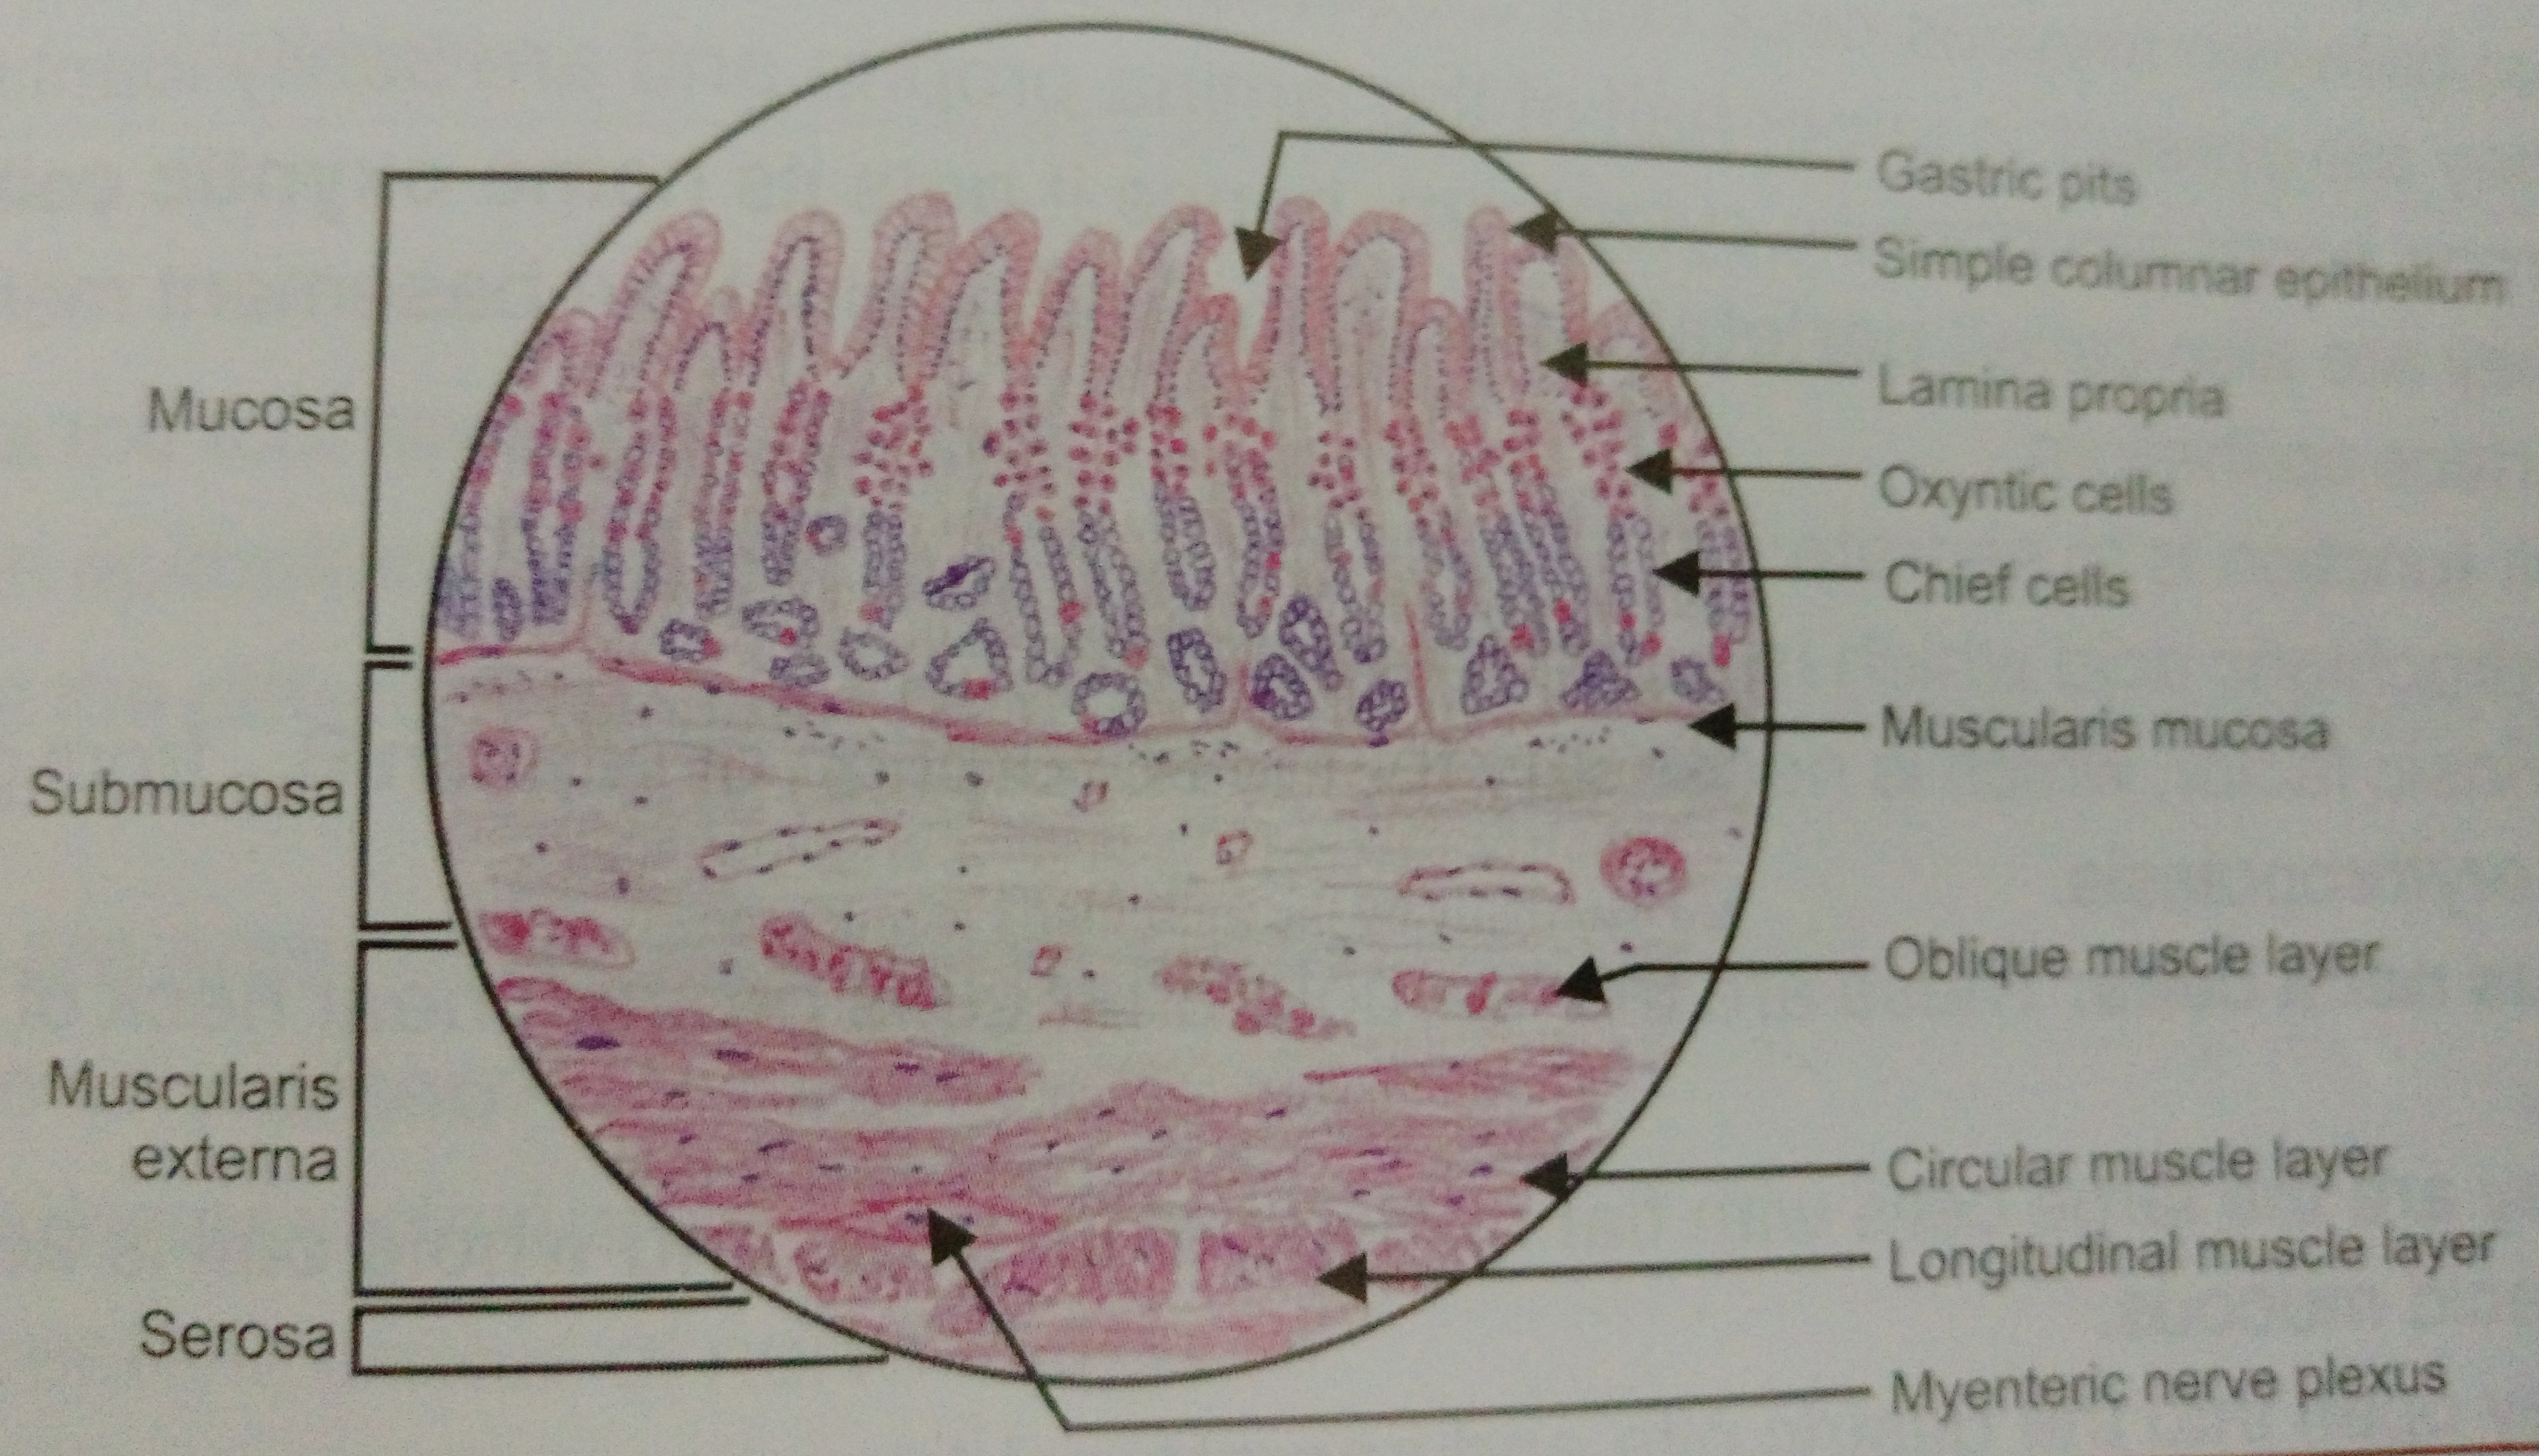 histology of fundus stomach manage your time 1996 posterior fundus uterus diagram of fundus [ 3428 x 1966 Pixel ]